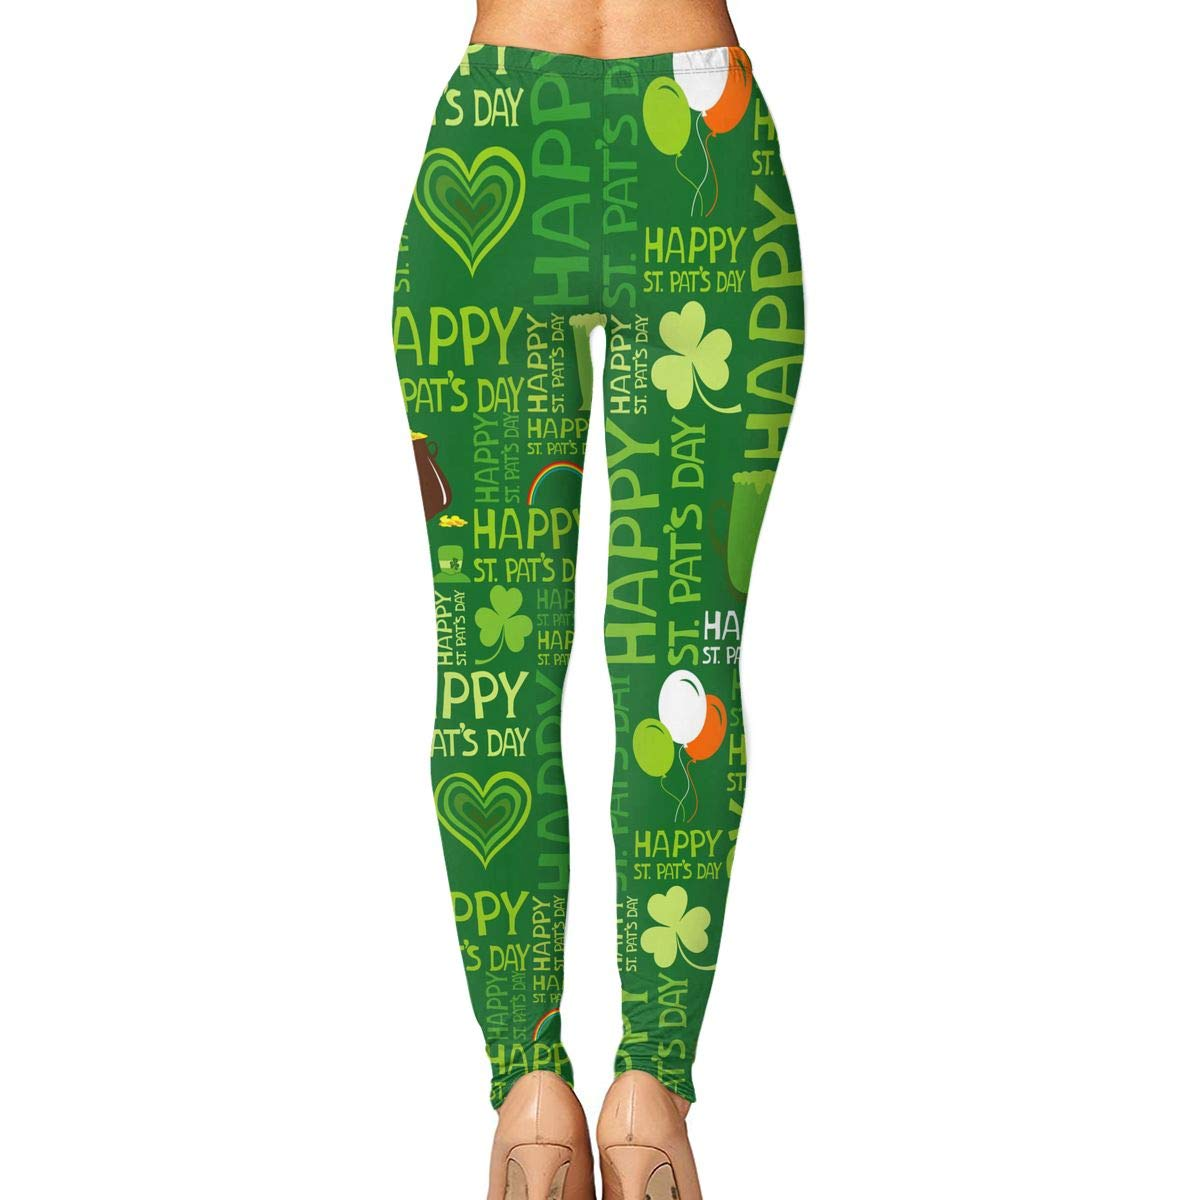 01b6eefc71fc9 Amazon.com: St.Patrick's Day Yoga Pants for Women Compression Pants Running Tights  Leggings Gym Tights: Clothing